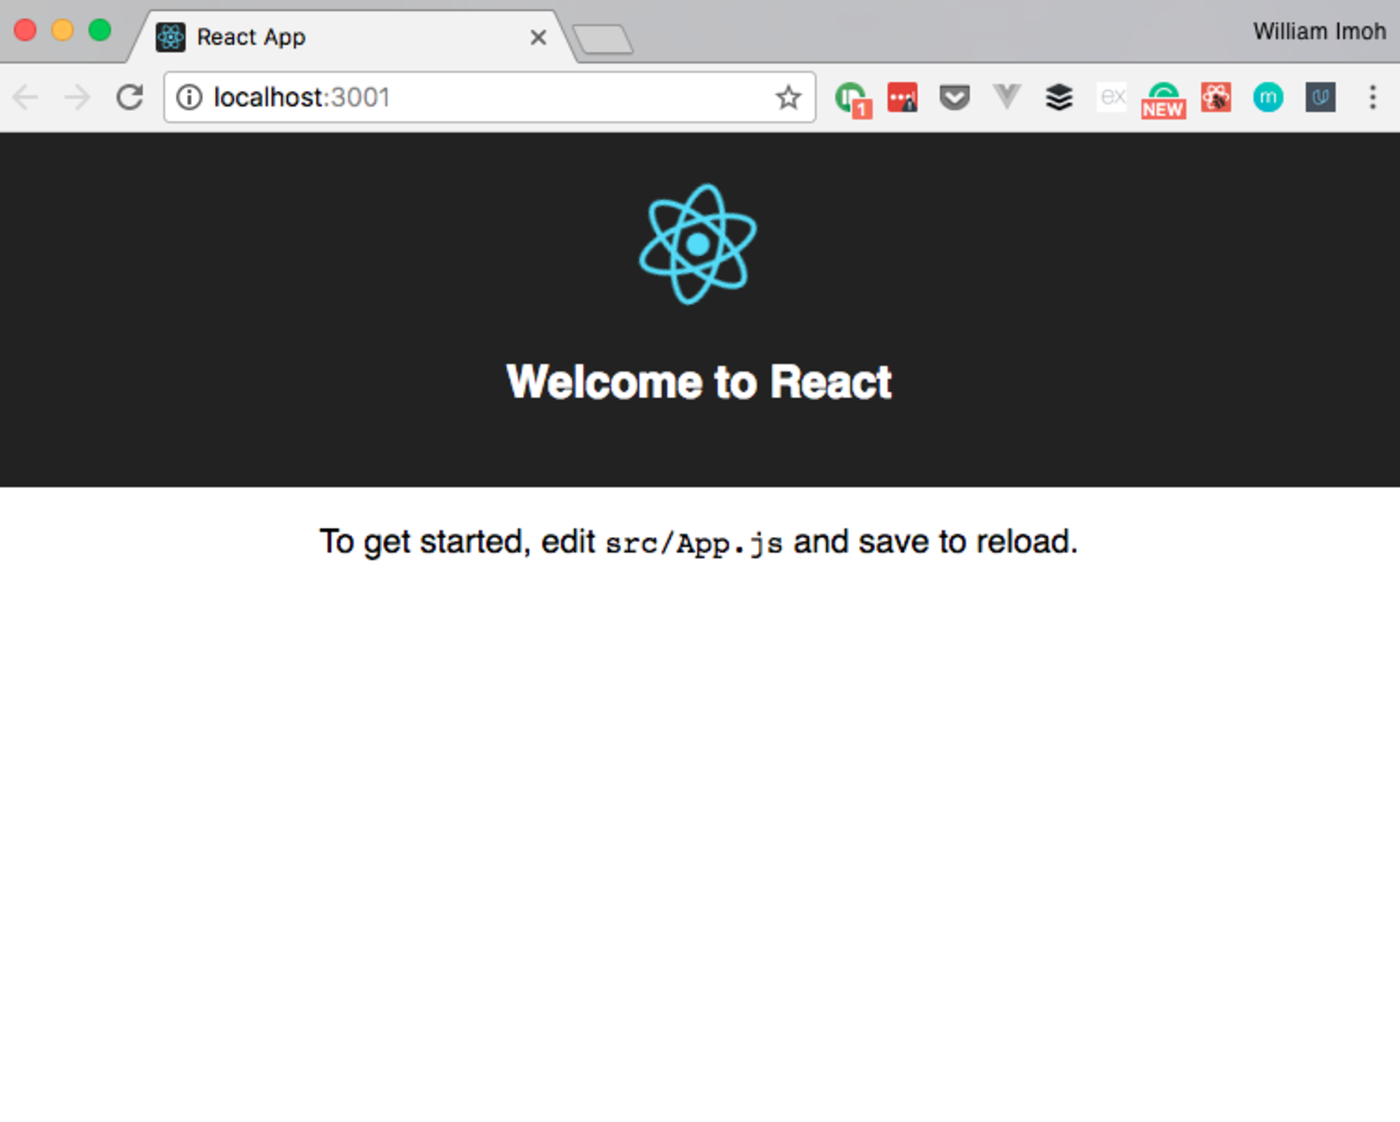 Building a Smart AI Image Search Tool Using React Part 1